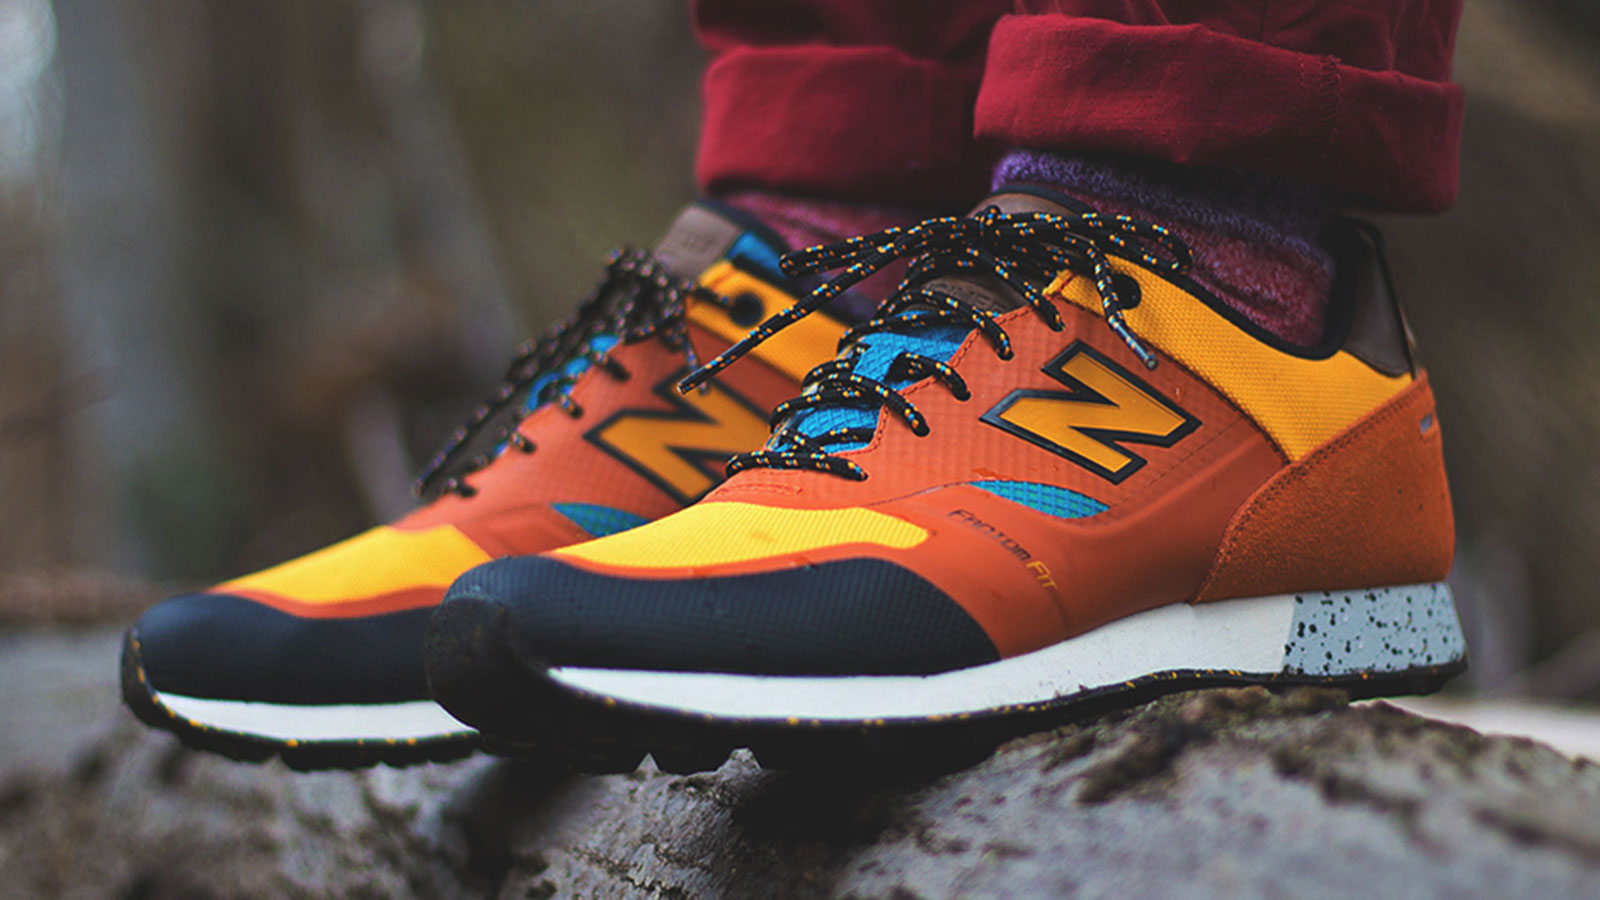 New Balance Trailbuster Re-Engineered On Foot